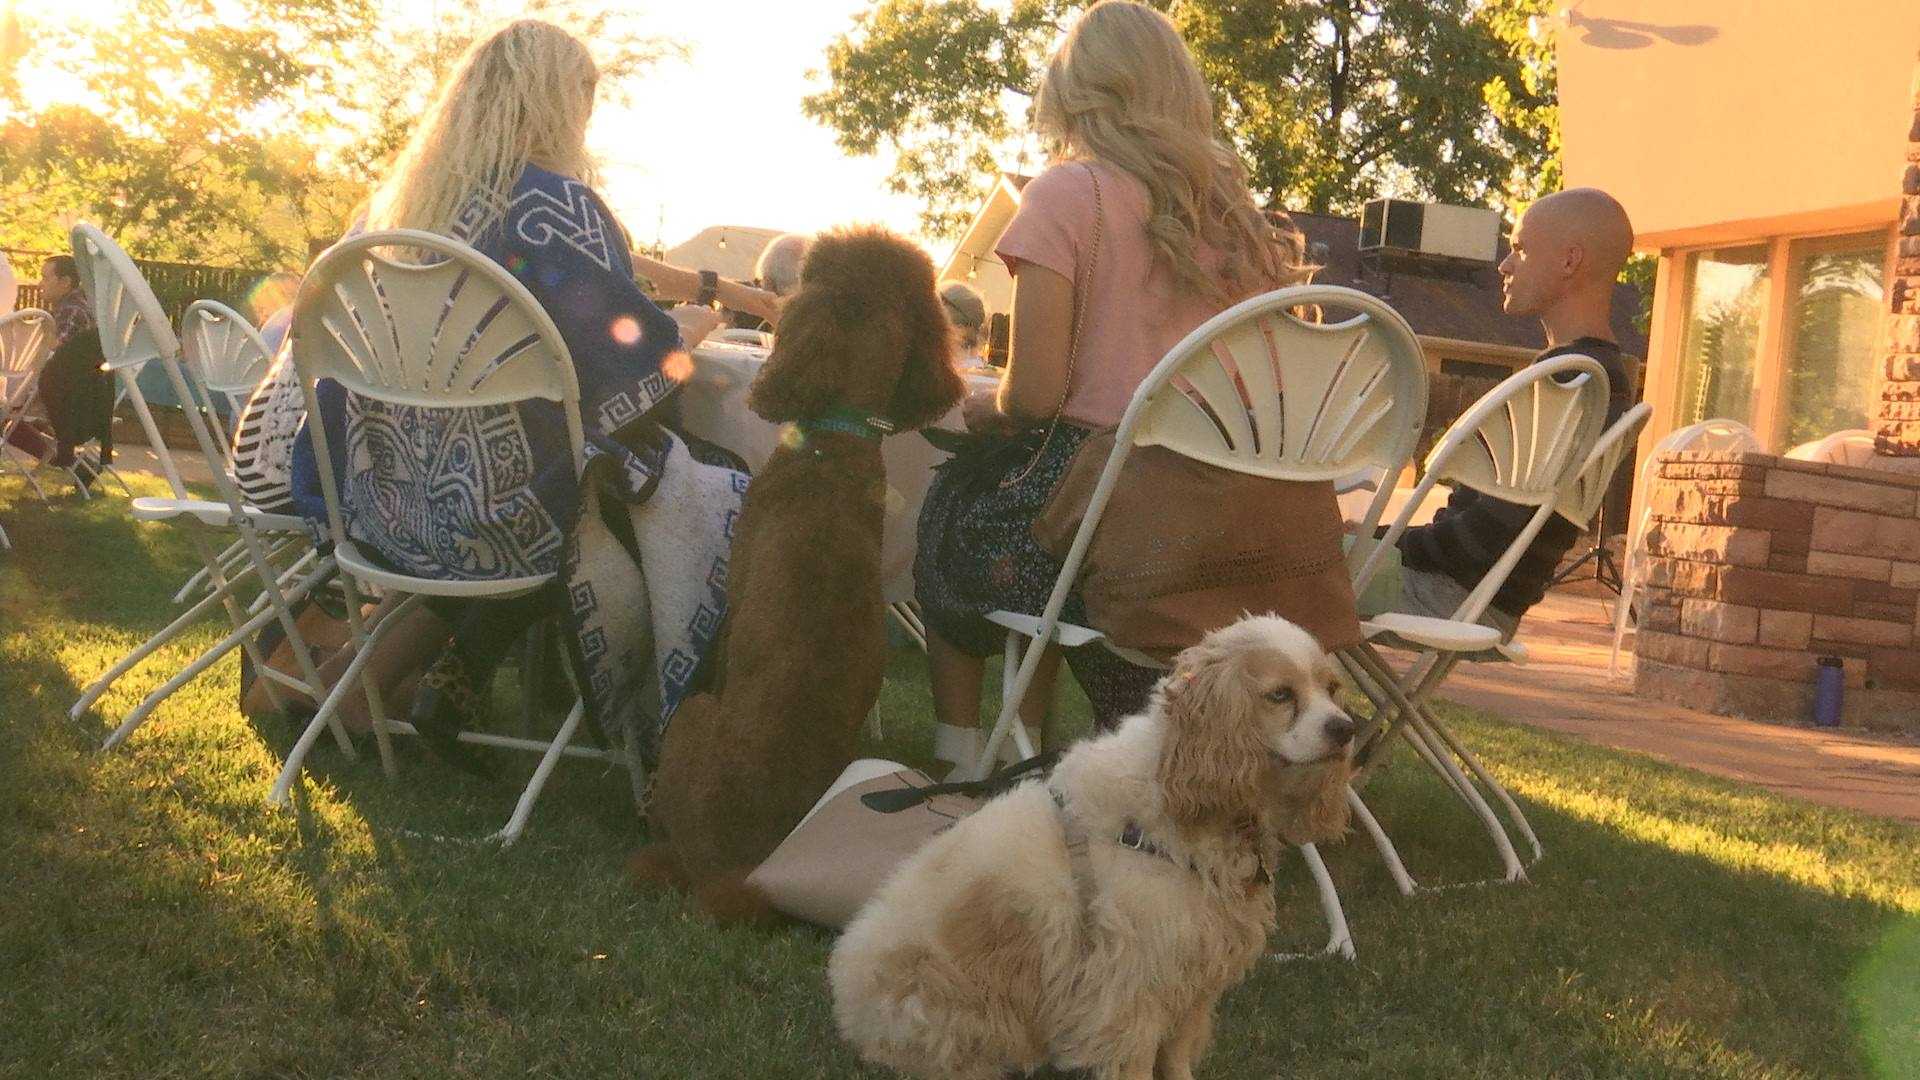 A fundraiser for a proposed Washington County animal shelter is held at the Difiore Center, 307 N. Main Street, St. George, Utah, Sept. 24, 2016 | Photo by Austin Peck, St. George News